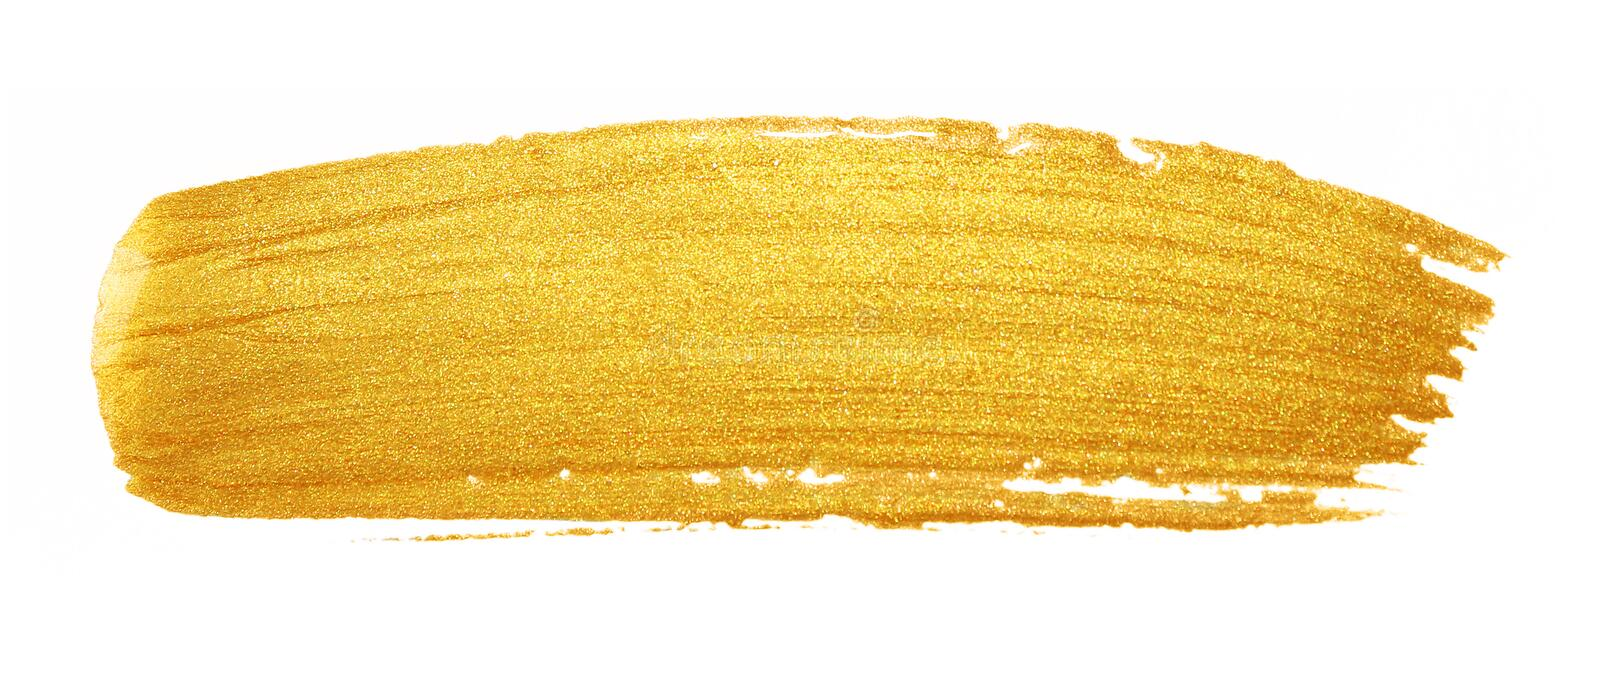 Course de pinceau de Golded Tache de calomnie de couleur d'or de scintillement sur le whi photo libre de droits